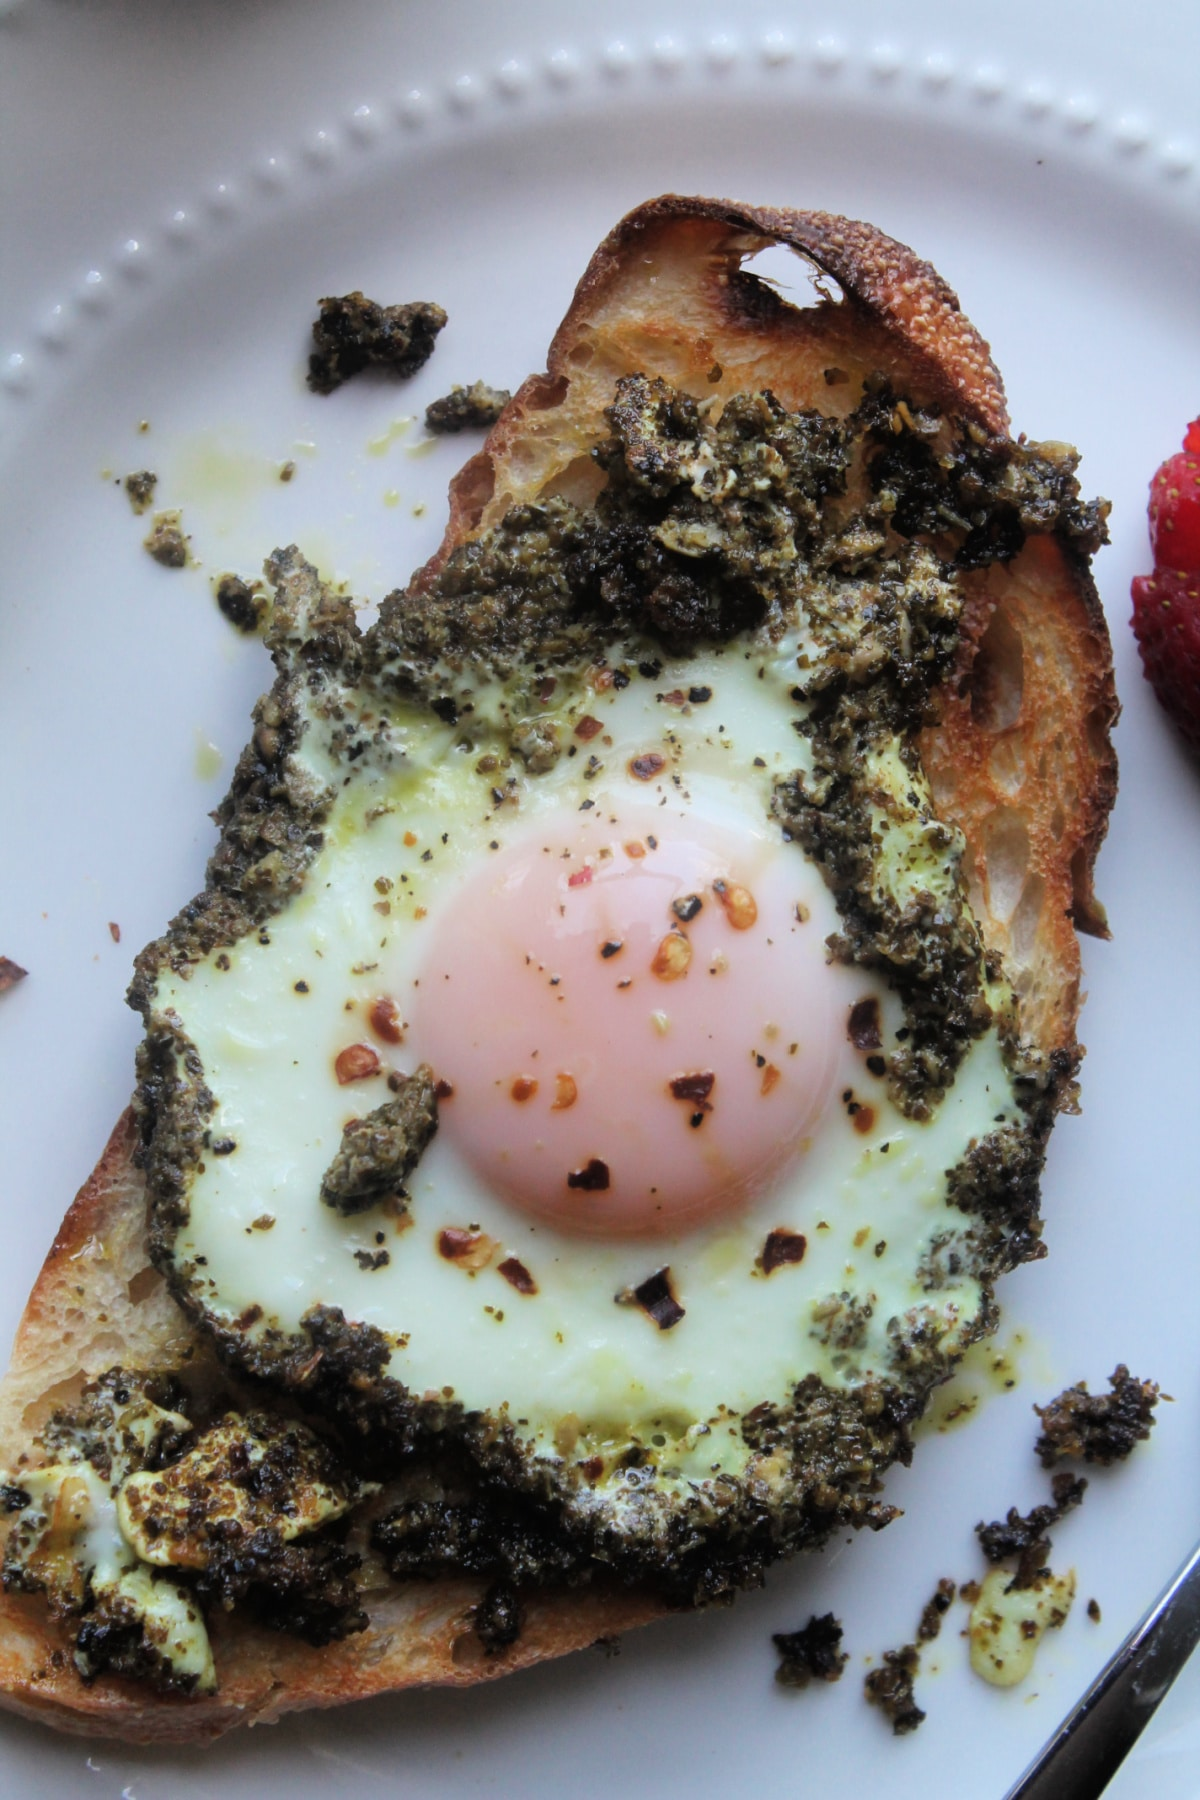 close up of cooked pesto egg on toast